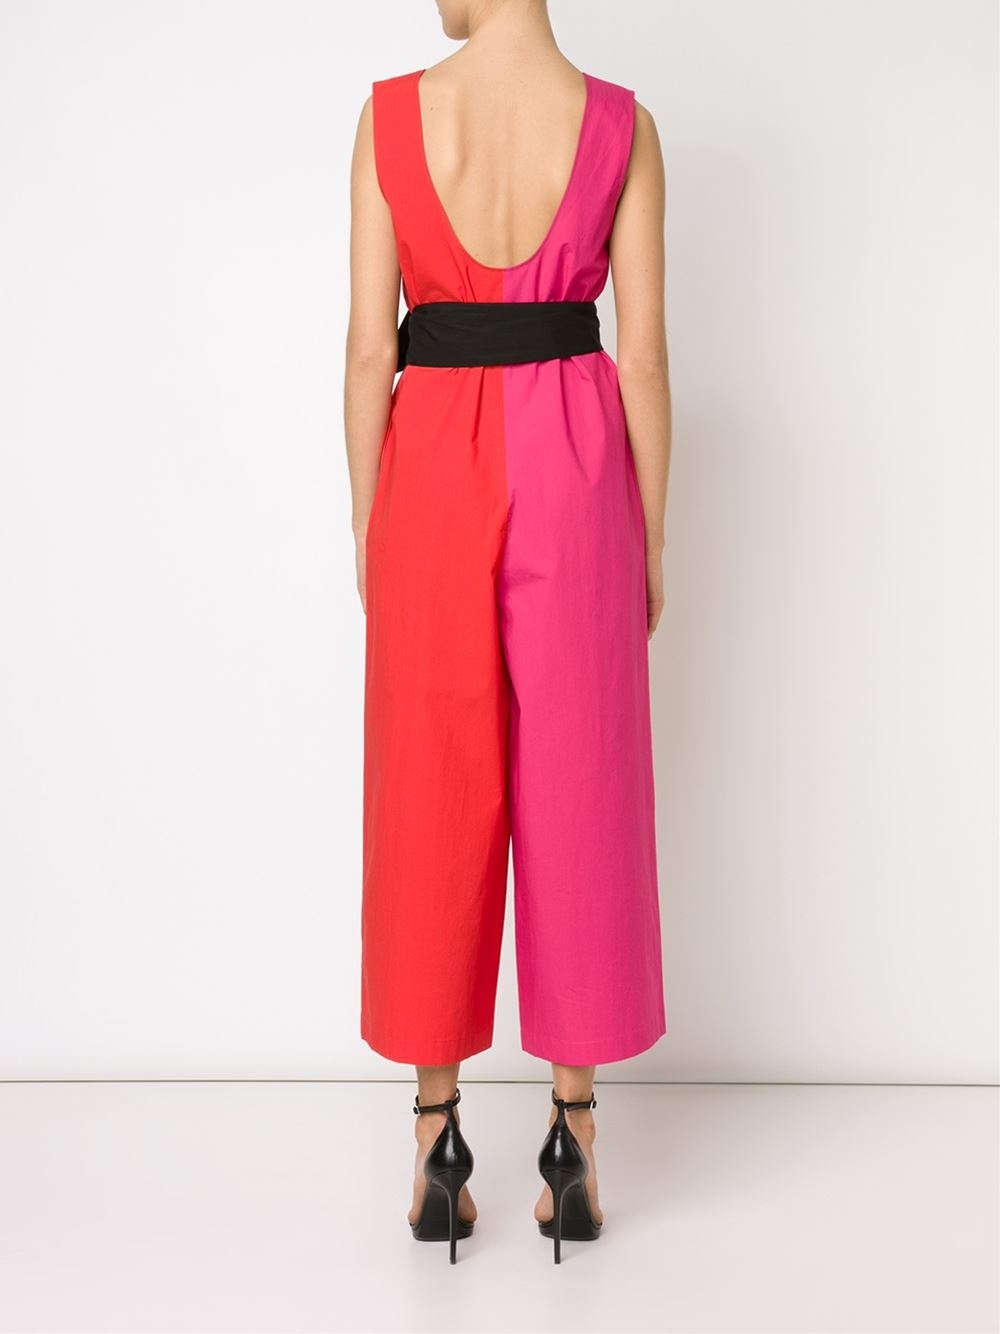 856bfe8ceb Lyst - Isa Arfen Colorblock Jumpsuit in Red